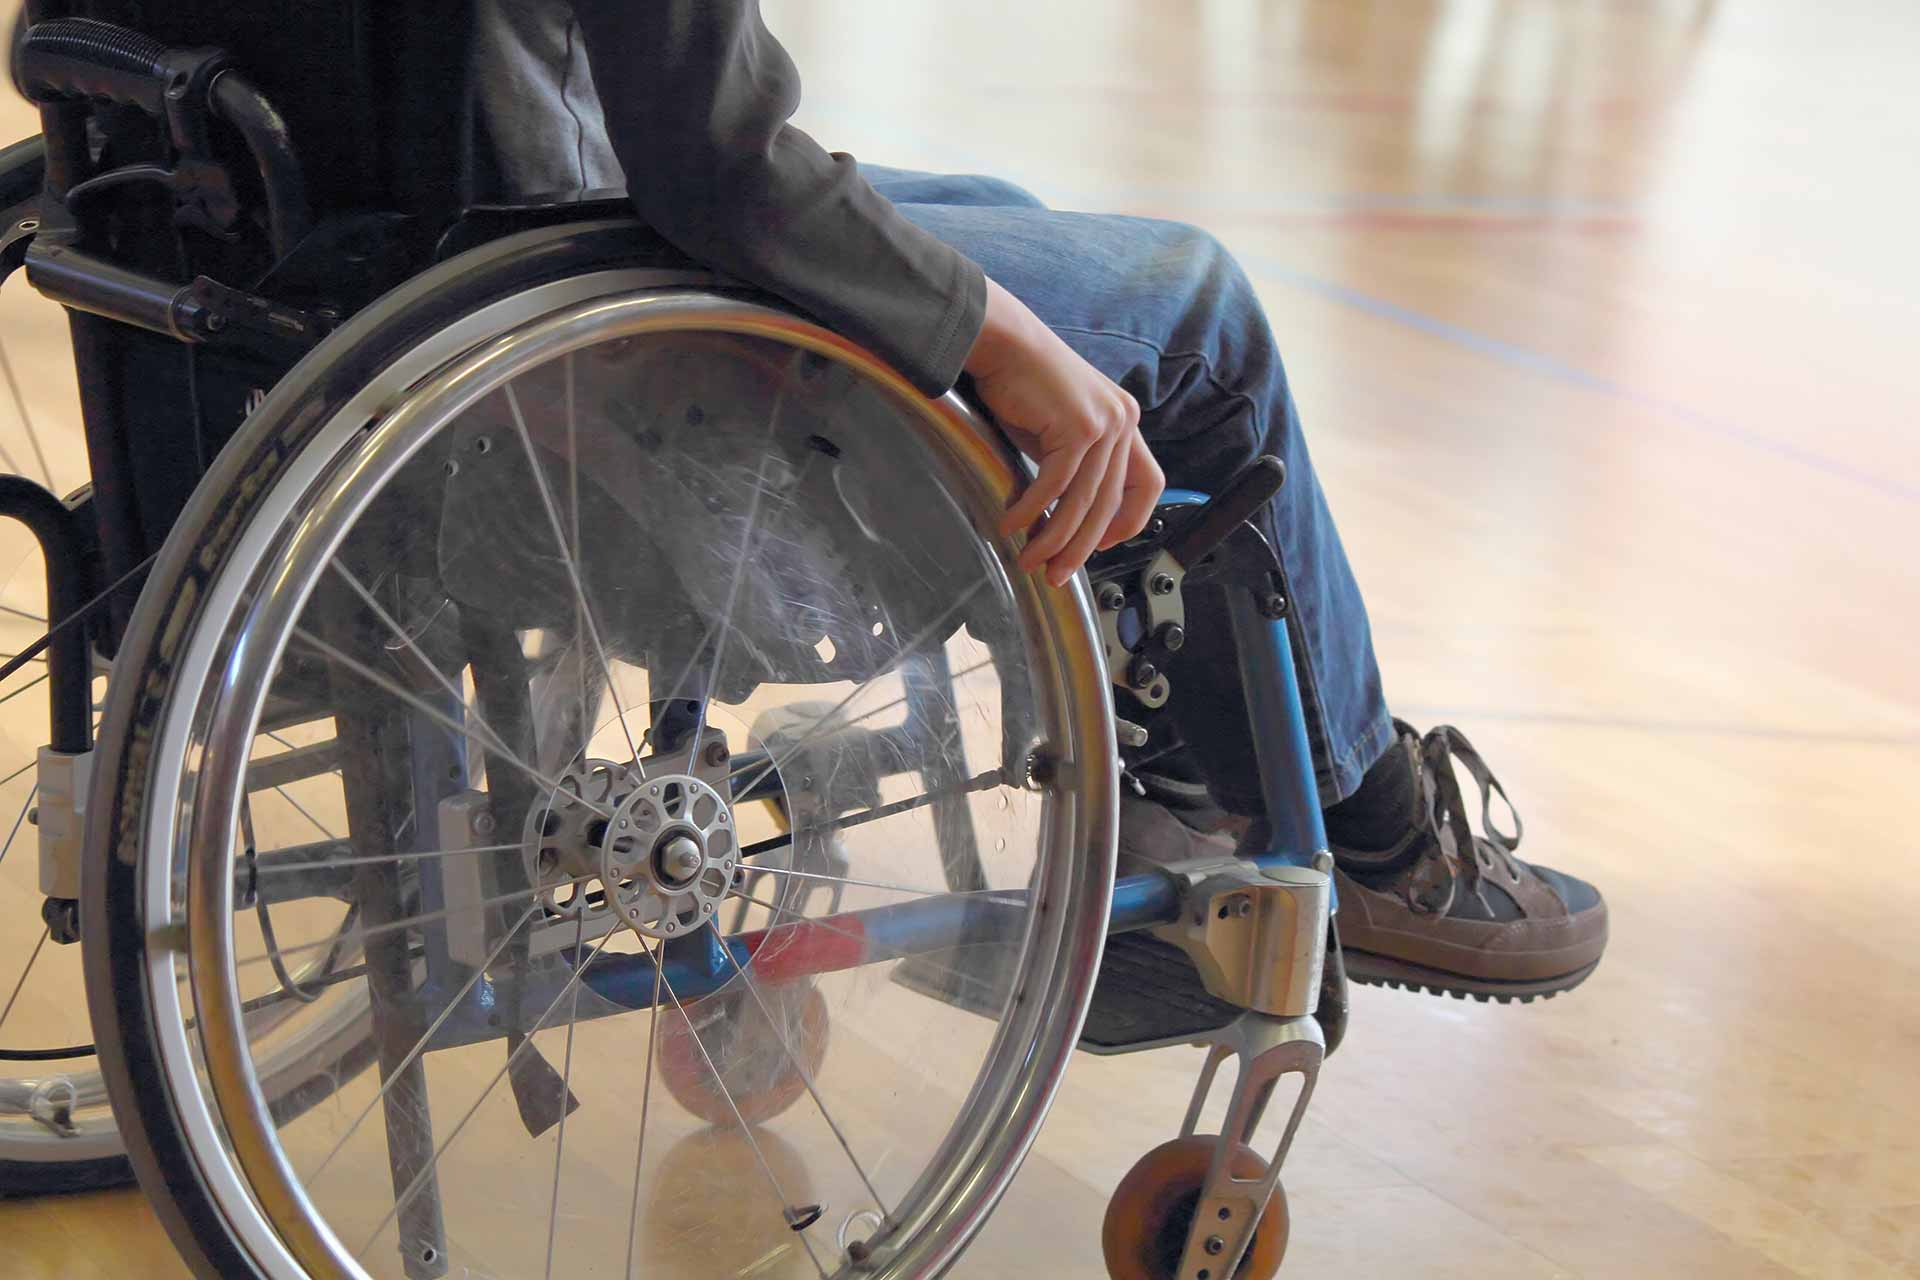 Adaptive Mobility Devices for children